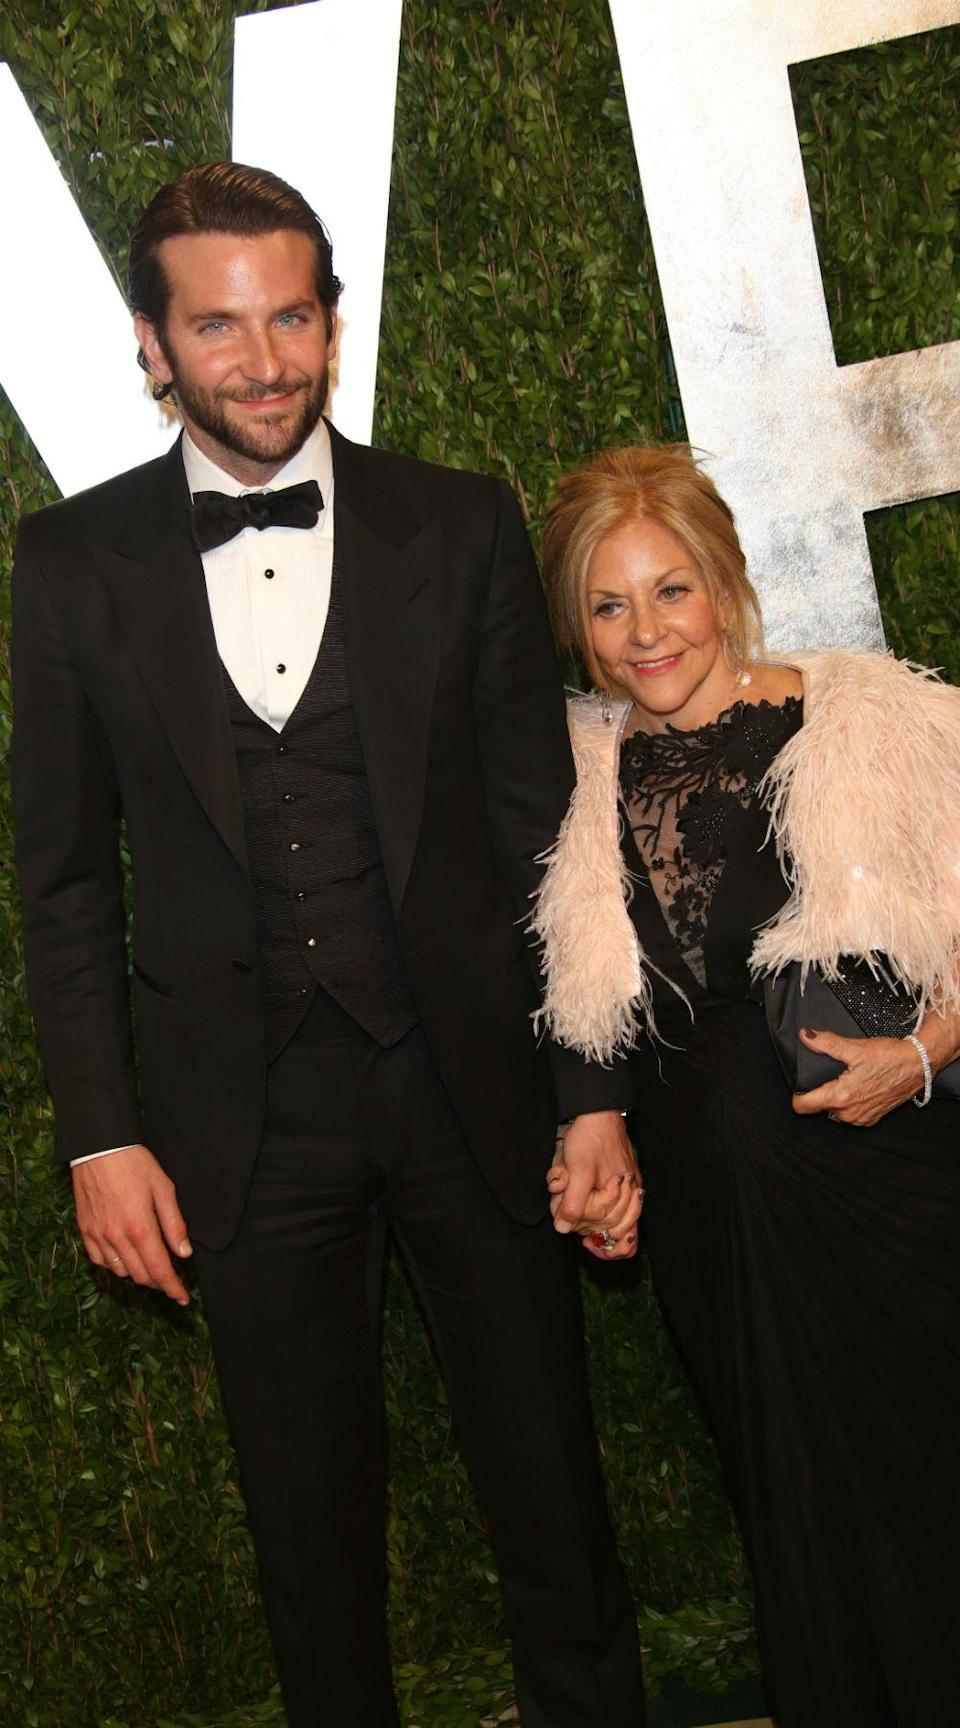 Bradley Cooper 'Refusing To Bring Home Women' After His Mum Becomes 'Glued' To Him